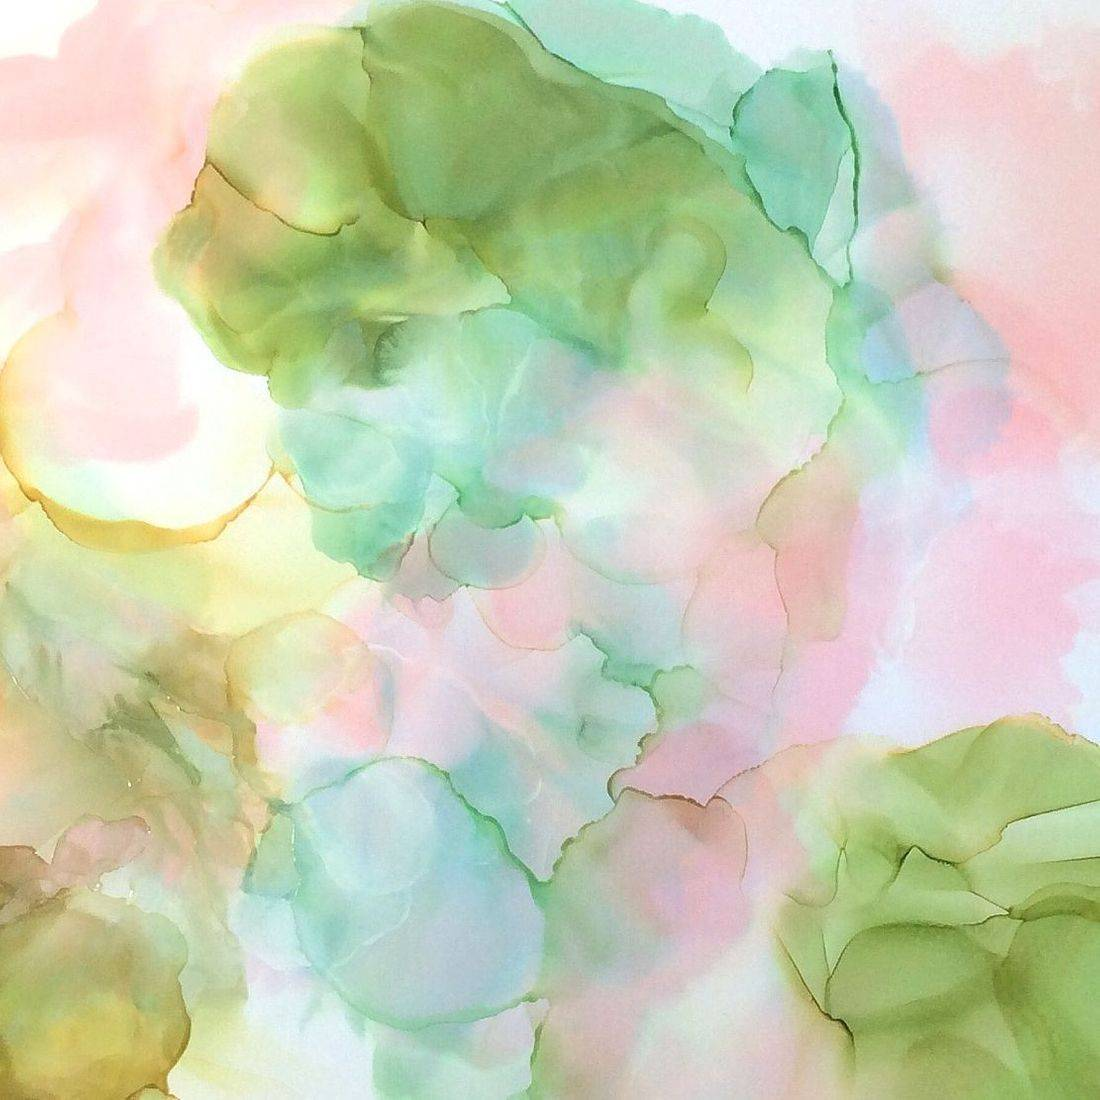 Abstract Floral, Pink and Green, Alcohol Ink Art, by Barbara Polc